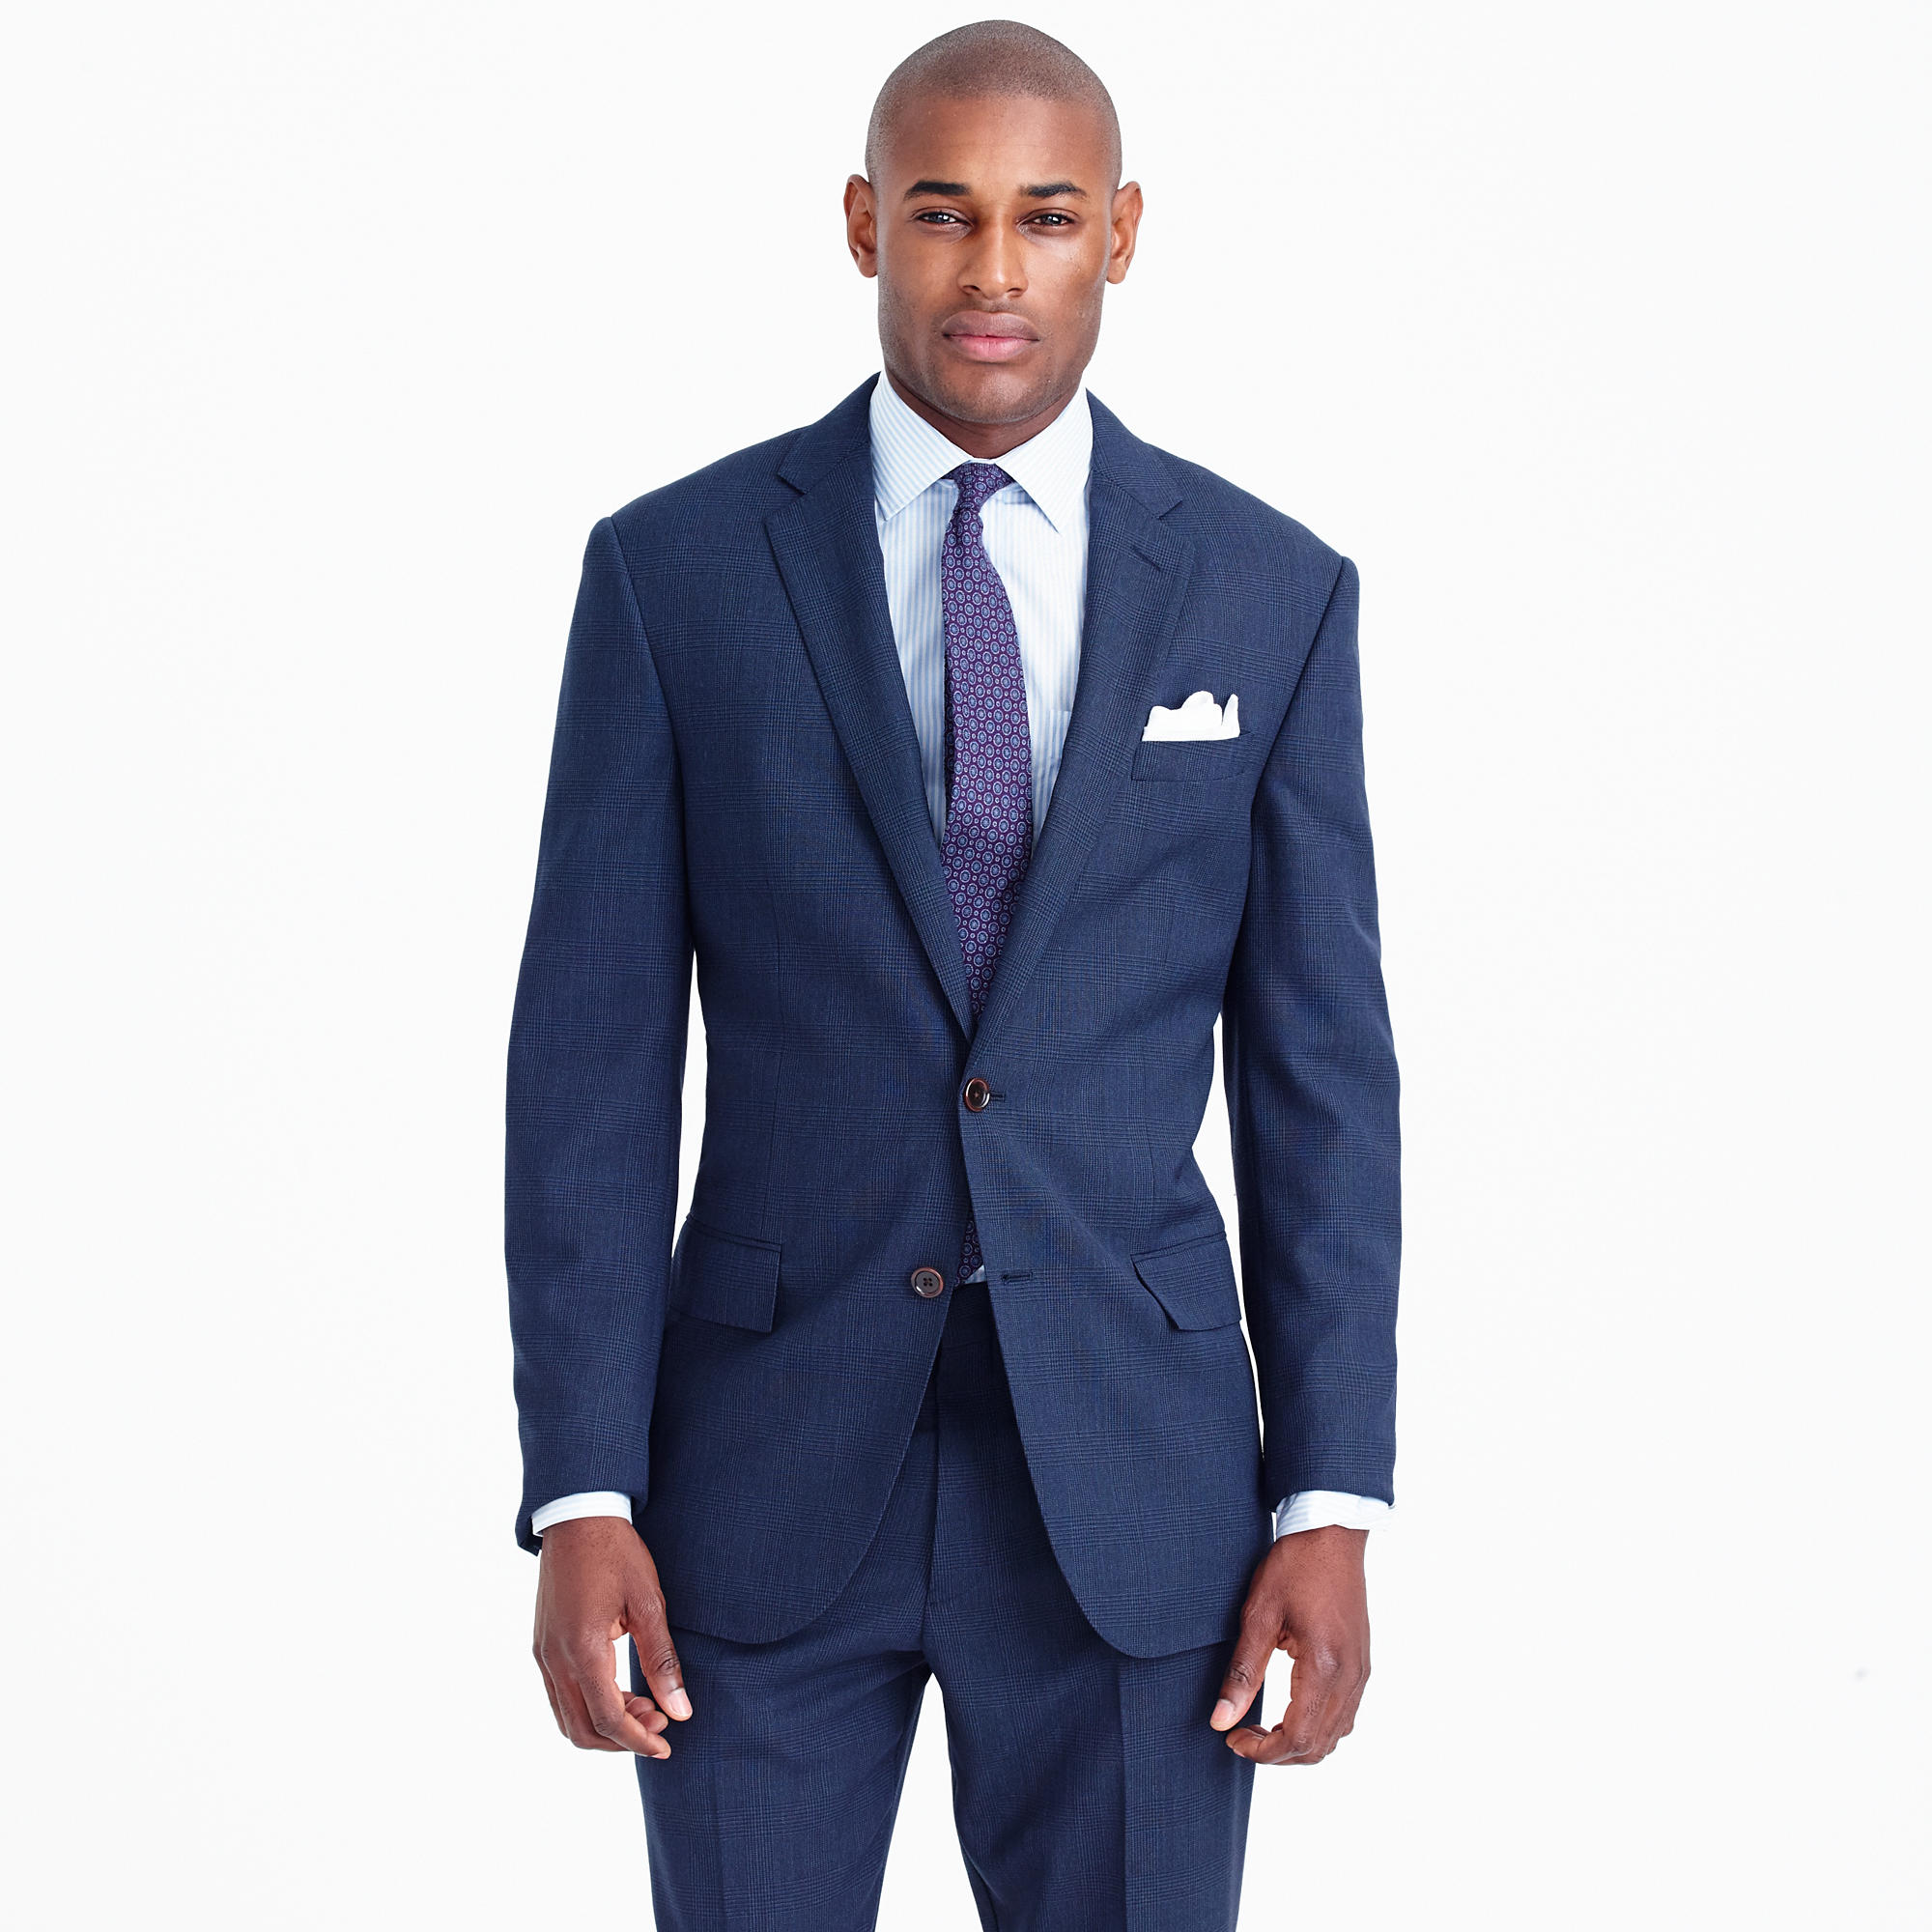 traveler suit jacket in glen plaid Italian wool - Traveler Suits ...